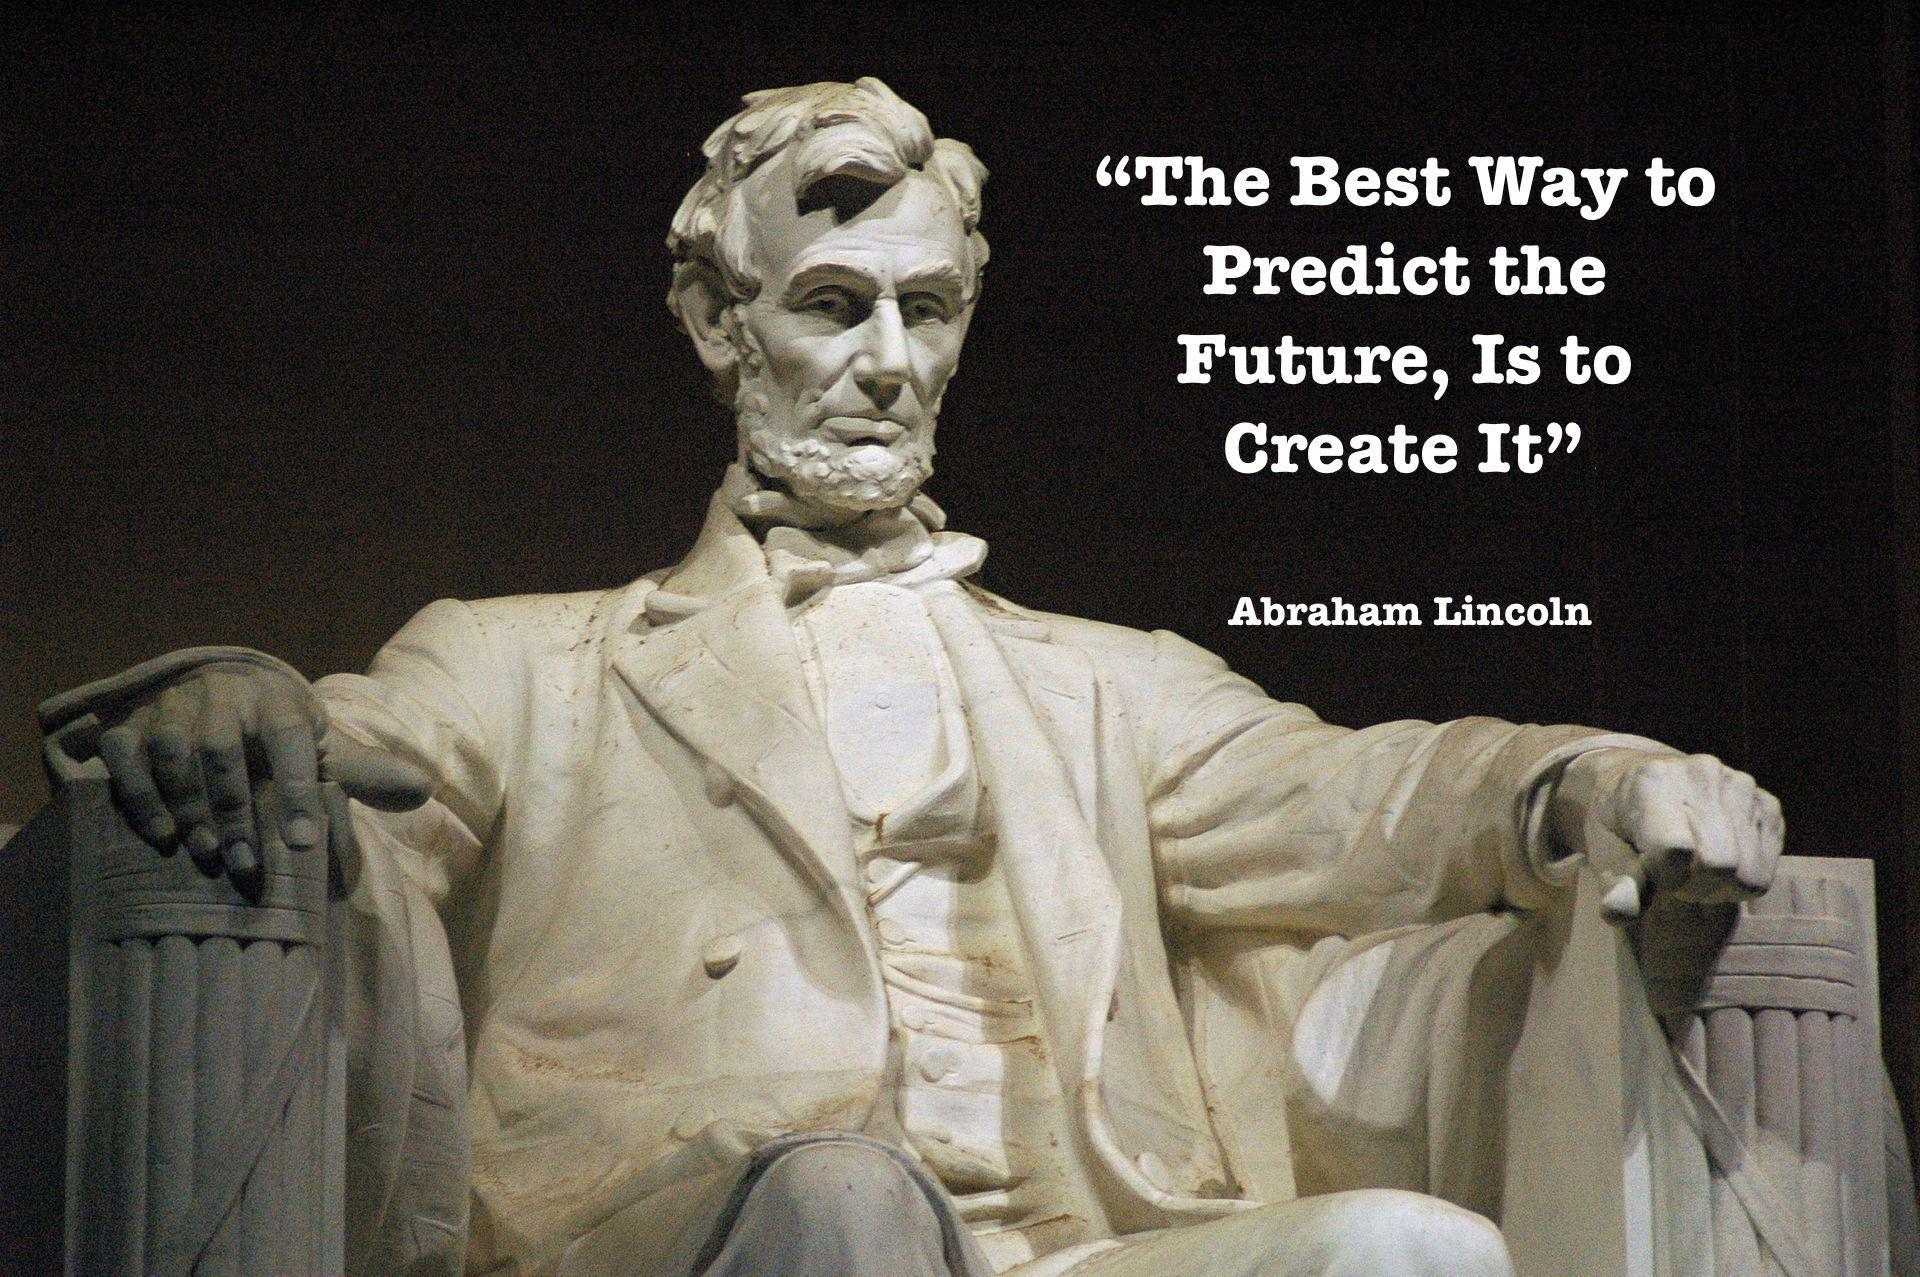 lincoln quote: the best way to predict the future is to create it